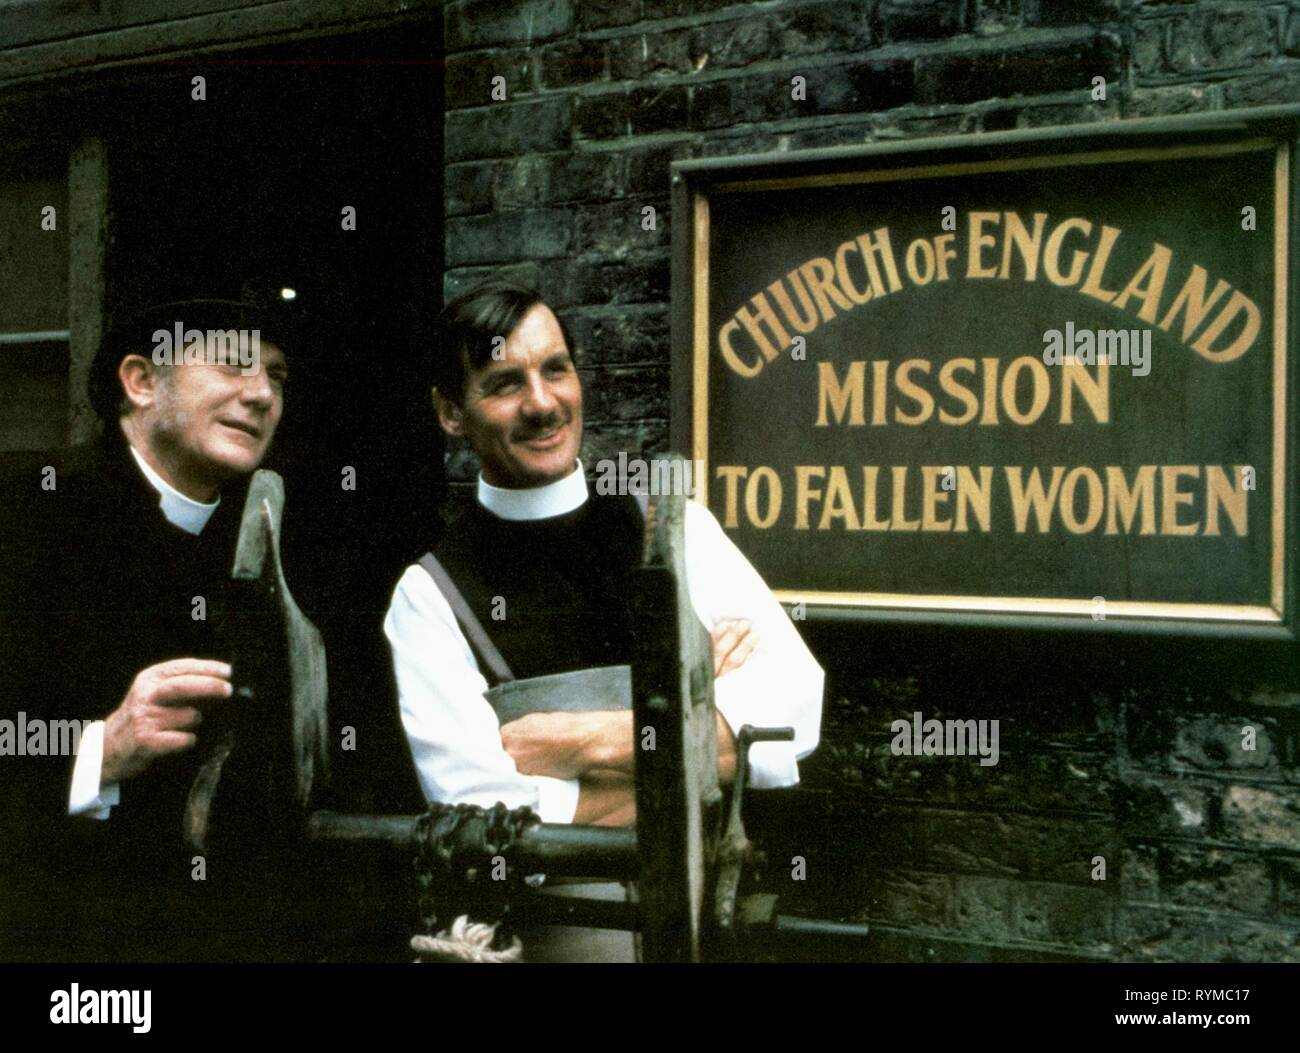 ELLIOTT,PALIN, THE MISSIONARY, 1982 - Stock Image